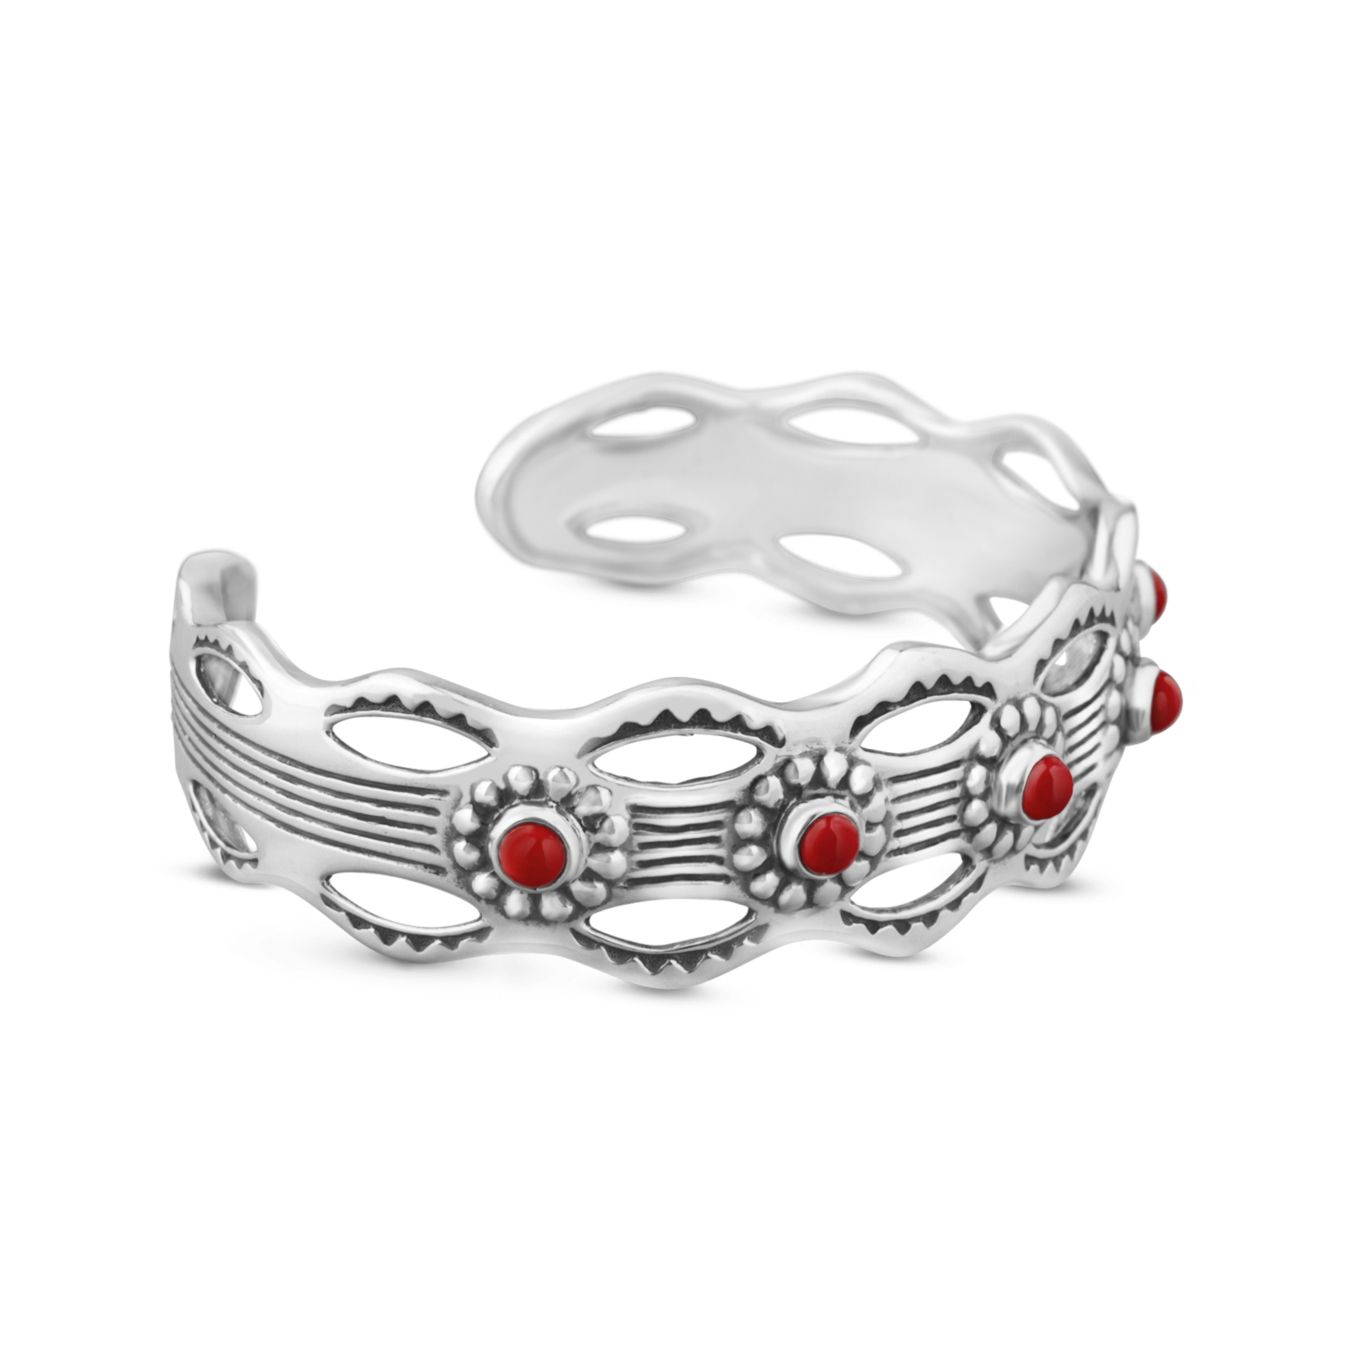 Carolyn Pollack Jewelry | American West Artisan Red Coral Southwest Cuff Bracelet